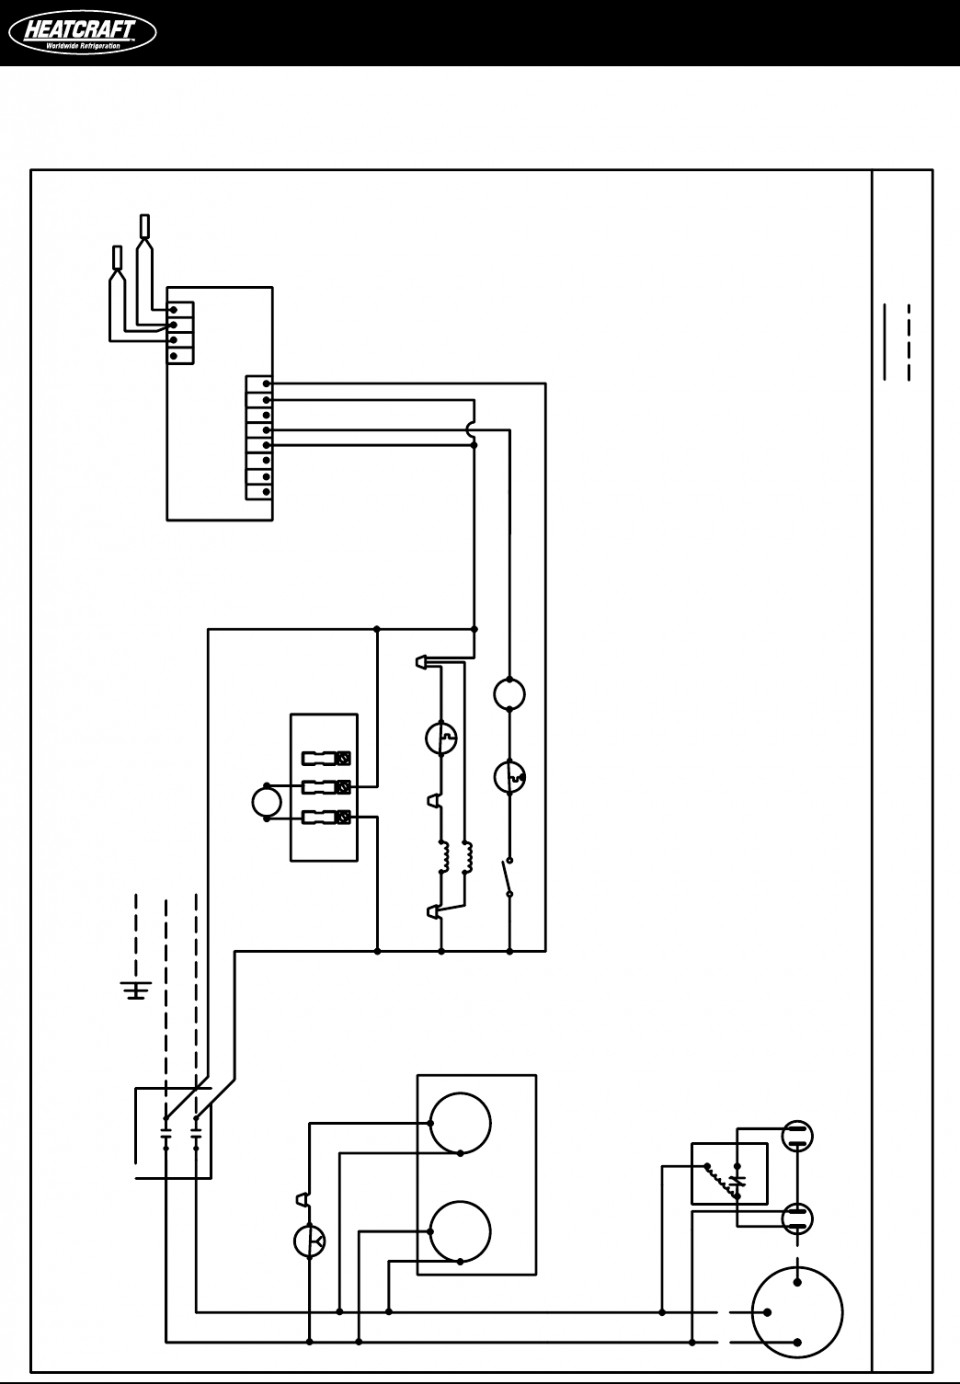 bohn walk in freezer wiring diagram gallery | wiring ... walk in cooler wiring copeland walk in cooler wiring diagram